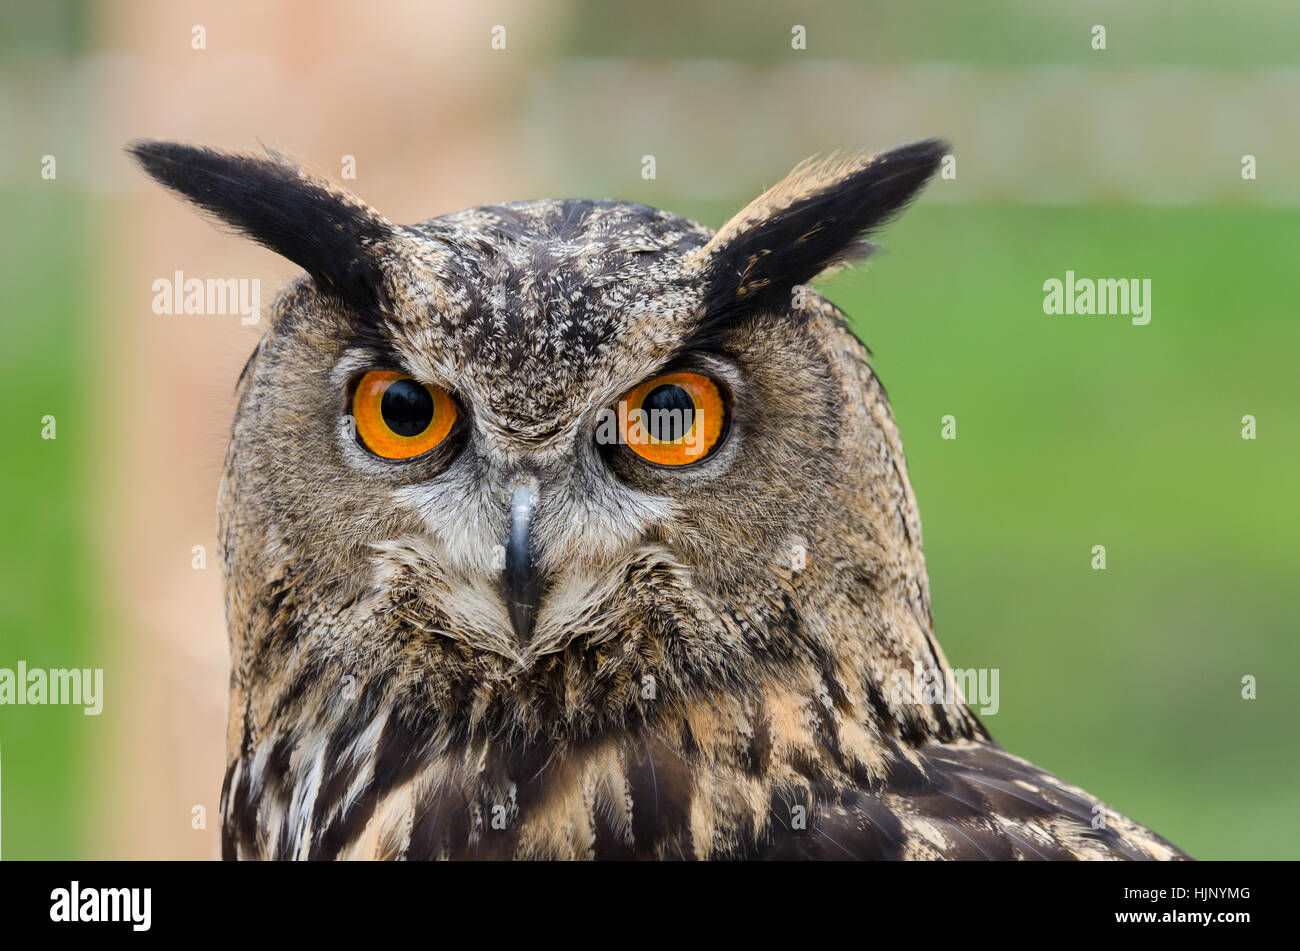 Animal Eye Organ Beak Owl Wings Colors Colours Italy Nature Stock Photo Alamy